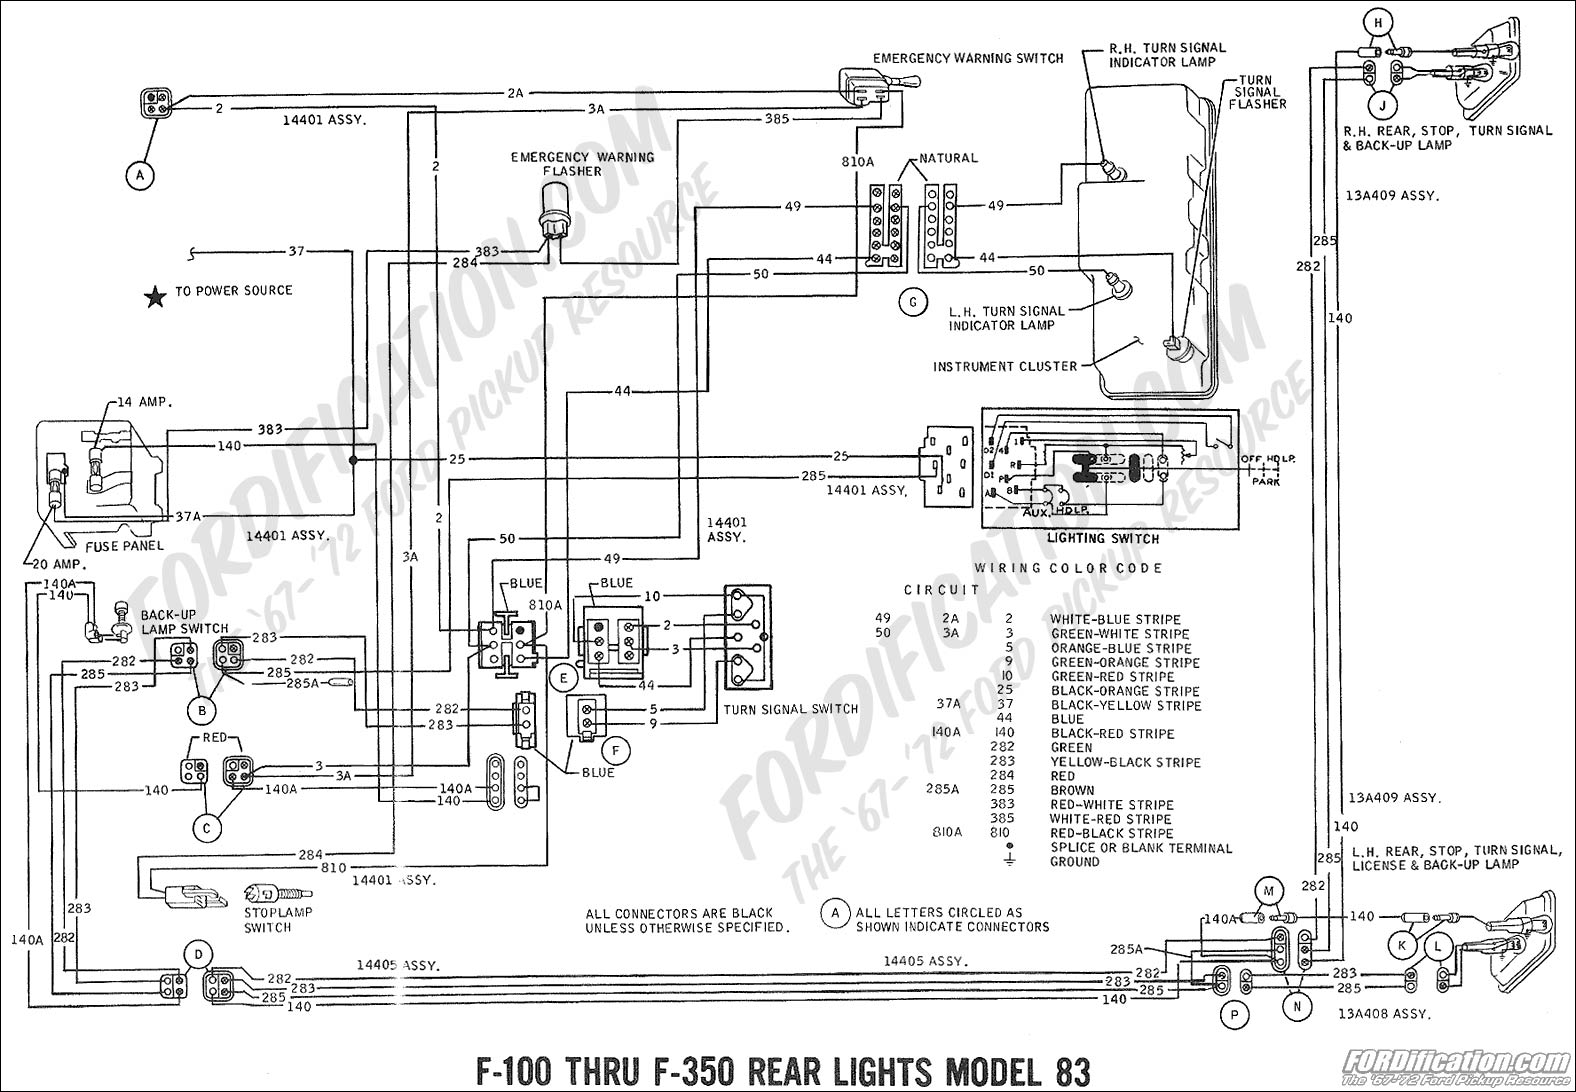 wiring_69rearlights mdl83 2 ford truck technical drawings and schematics section h wiring 2000 ford econoline van wiring diagram at mifinder.co